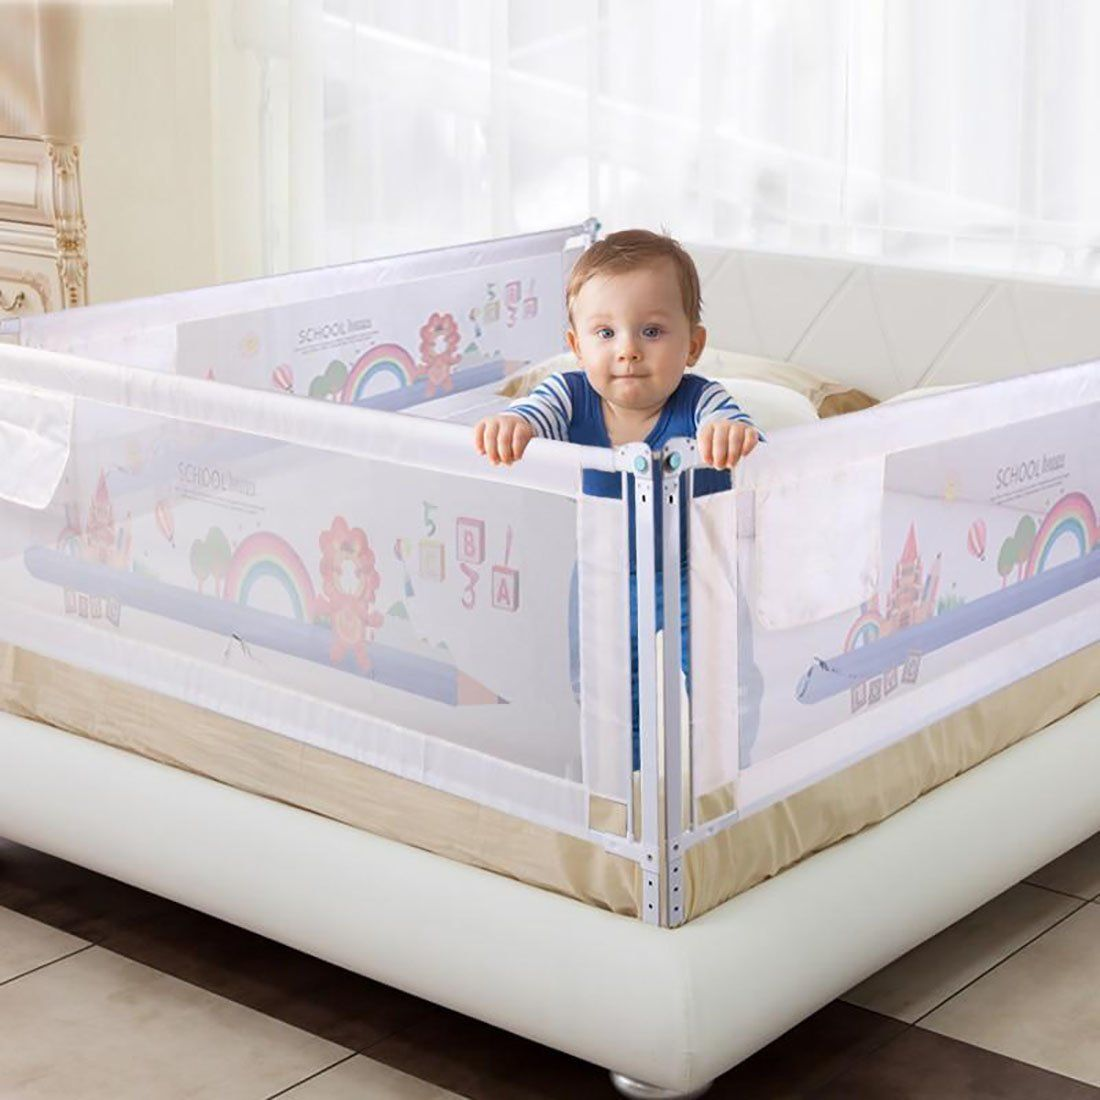 Baby's Bed Fence Safety Gate Security for Bed Crib Rails ...